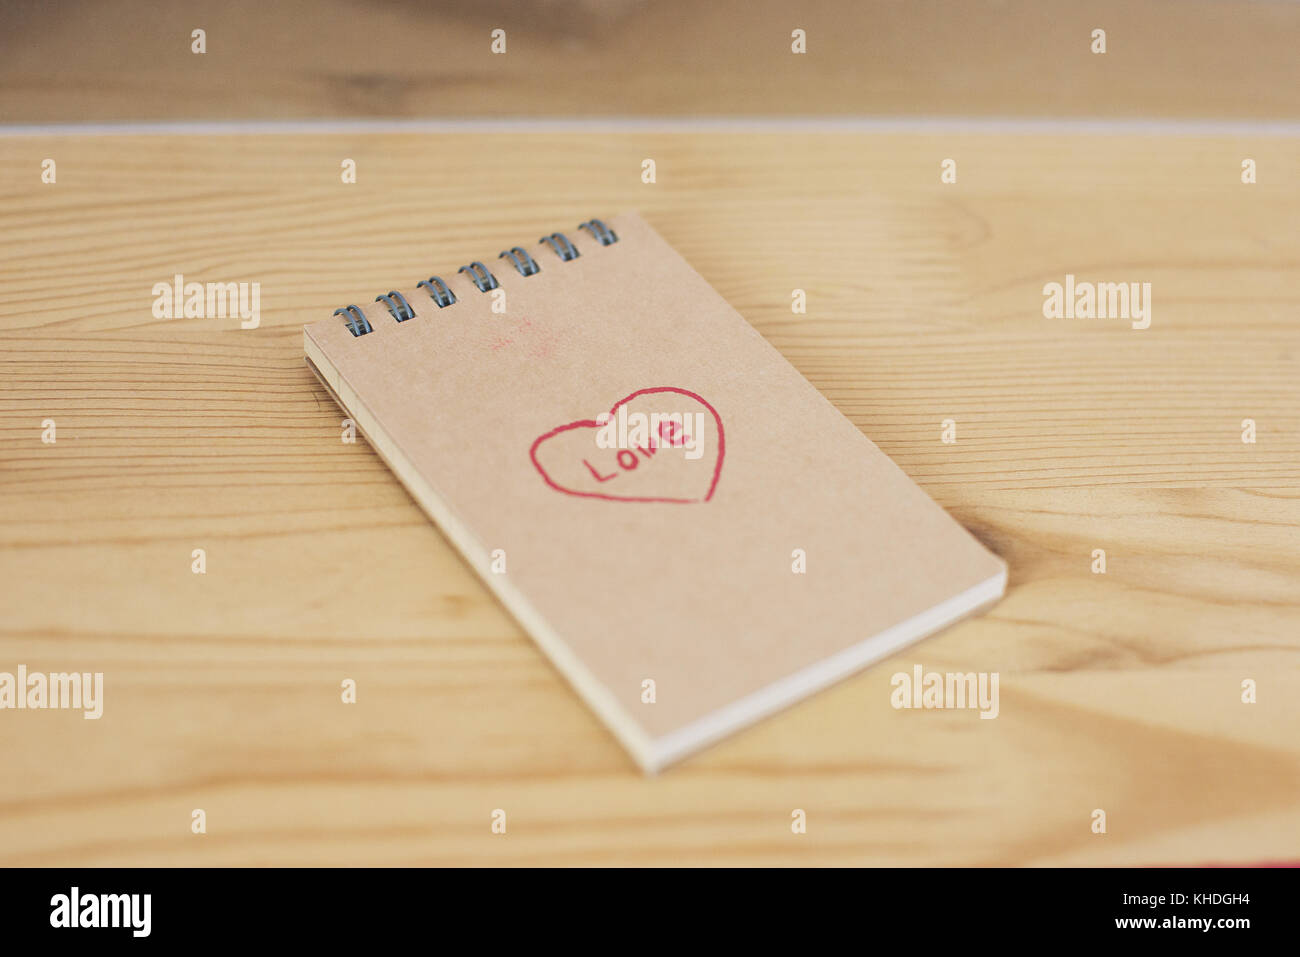 Note pad with heart shape and word love written on cover Stock Photo